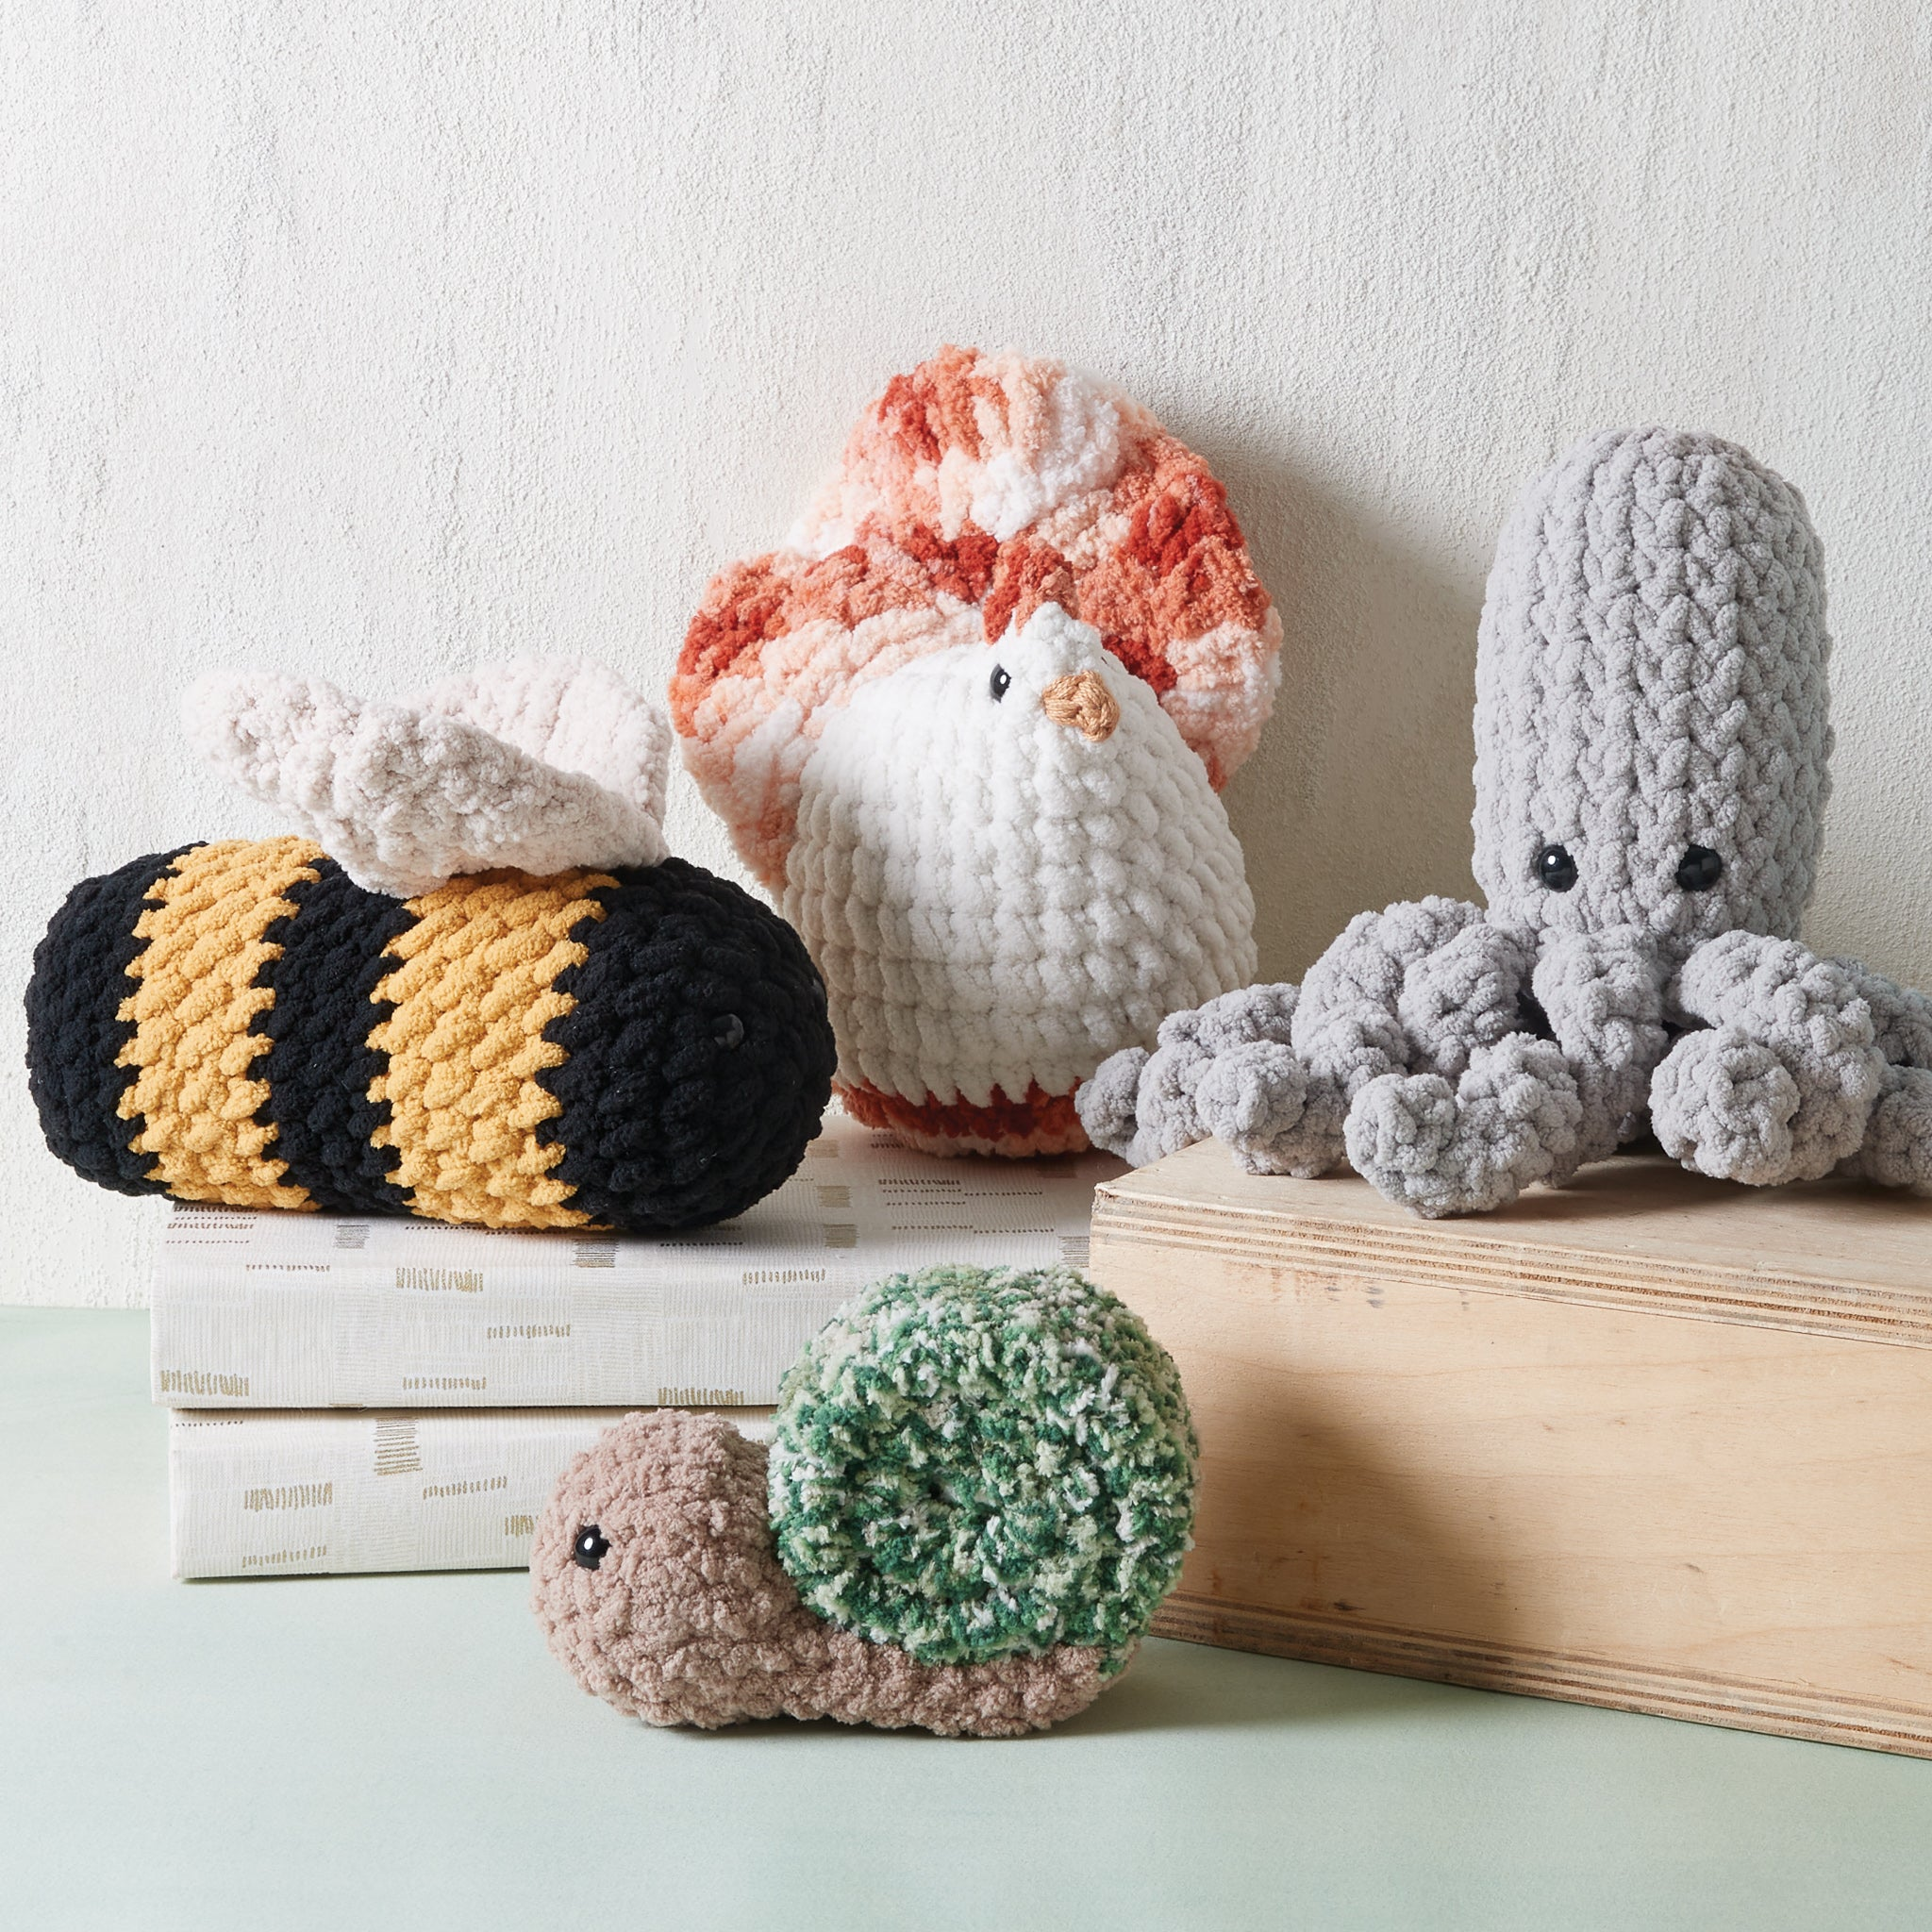 Crocheted Plush Critters